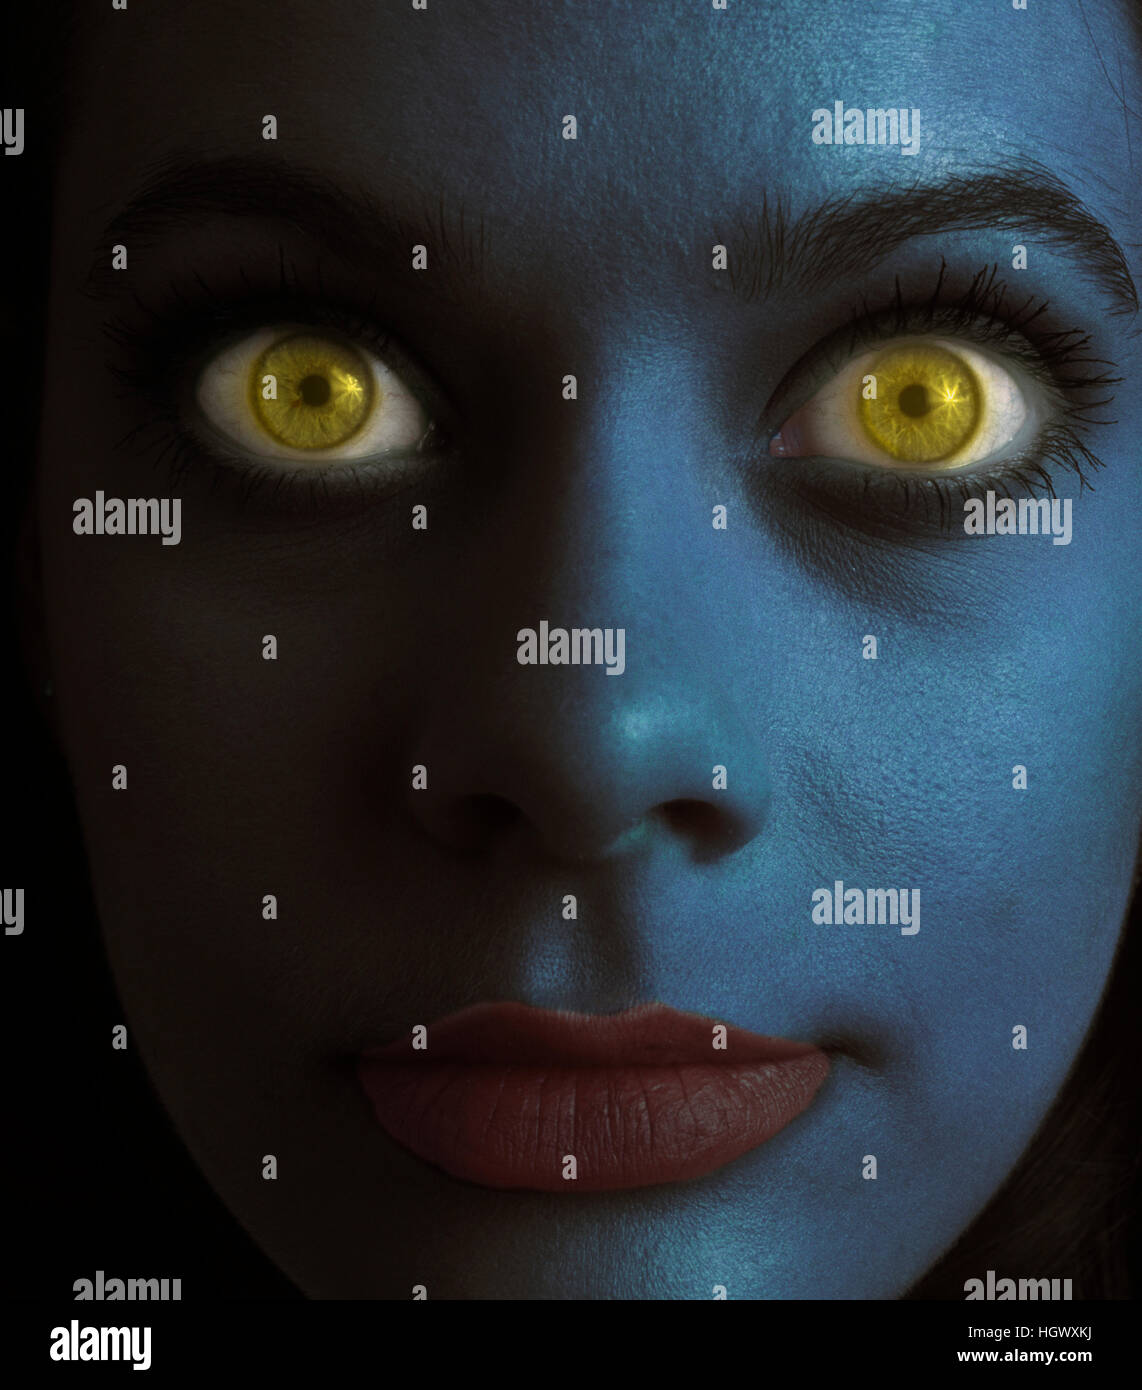 Blue woman with big yellow eyes - Stock Image